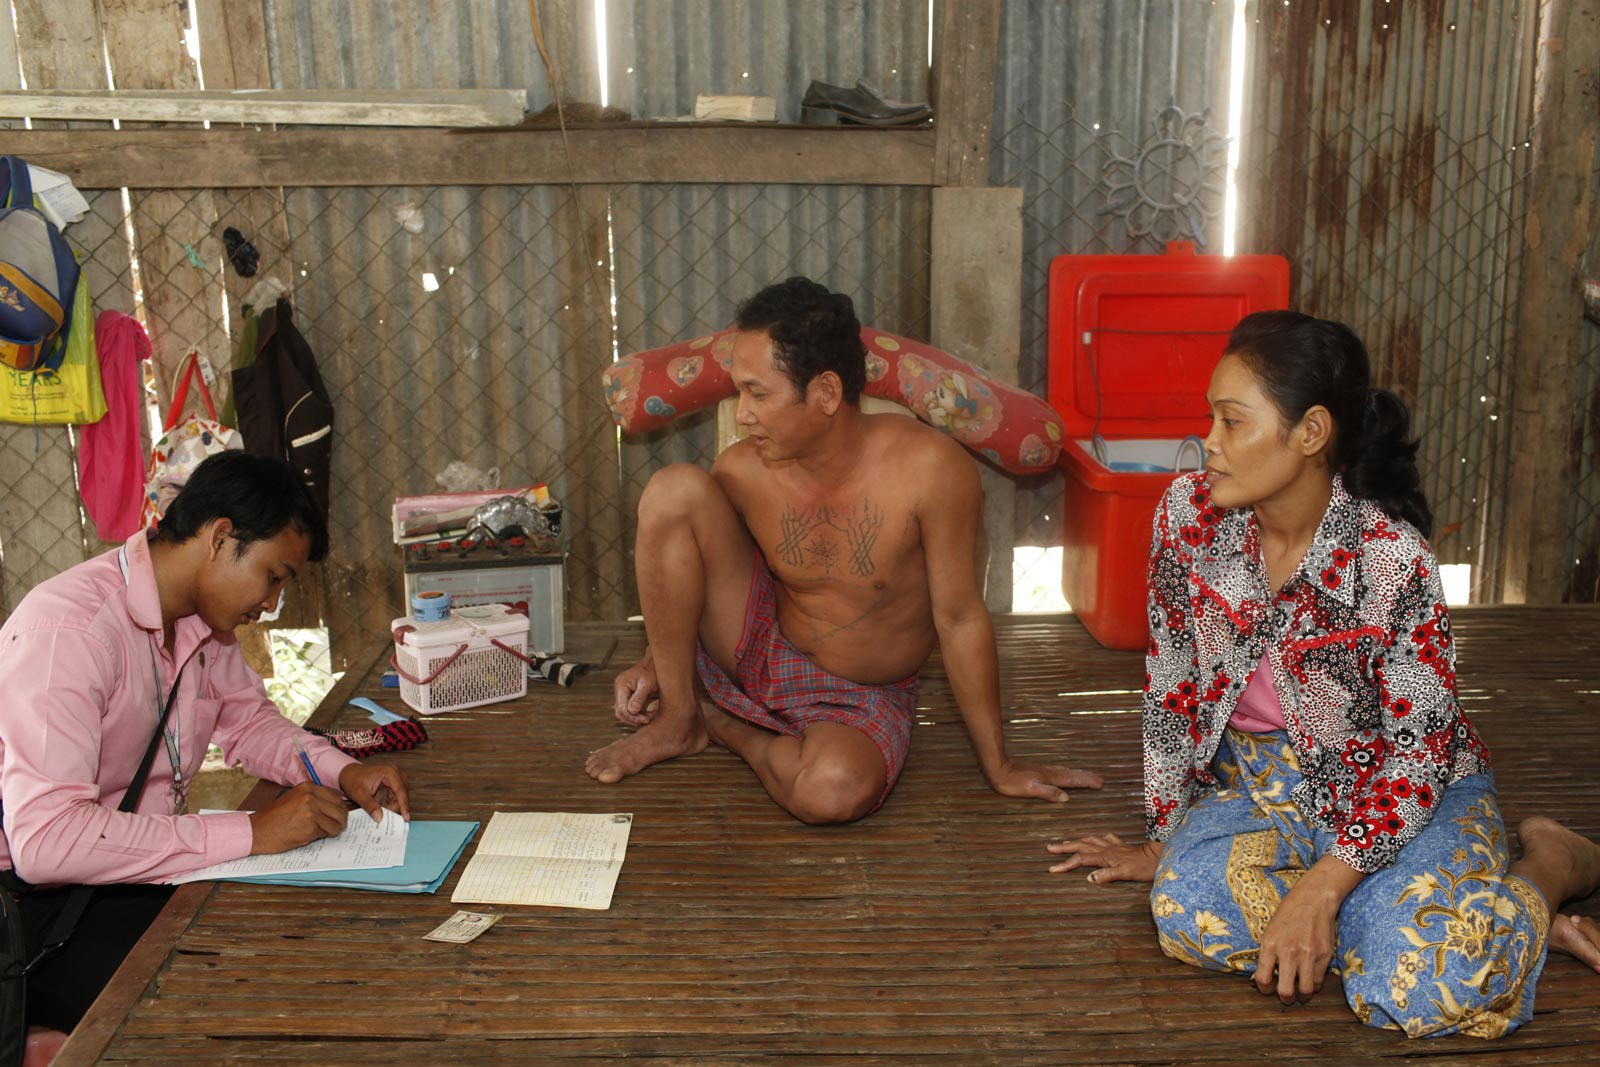 Chamroeun microfinance loan officer Chin Sokreth at a client's home in Cambodia